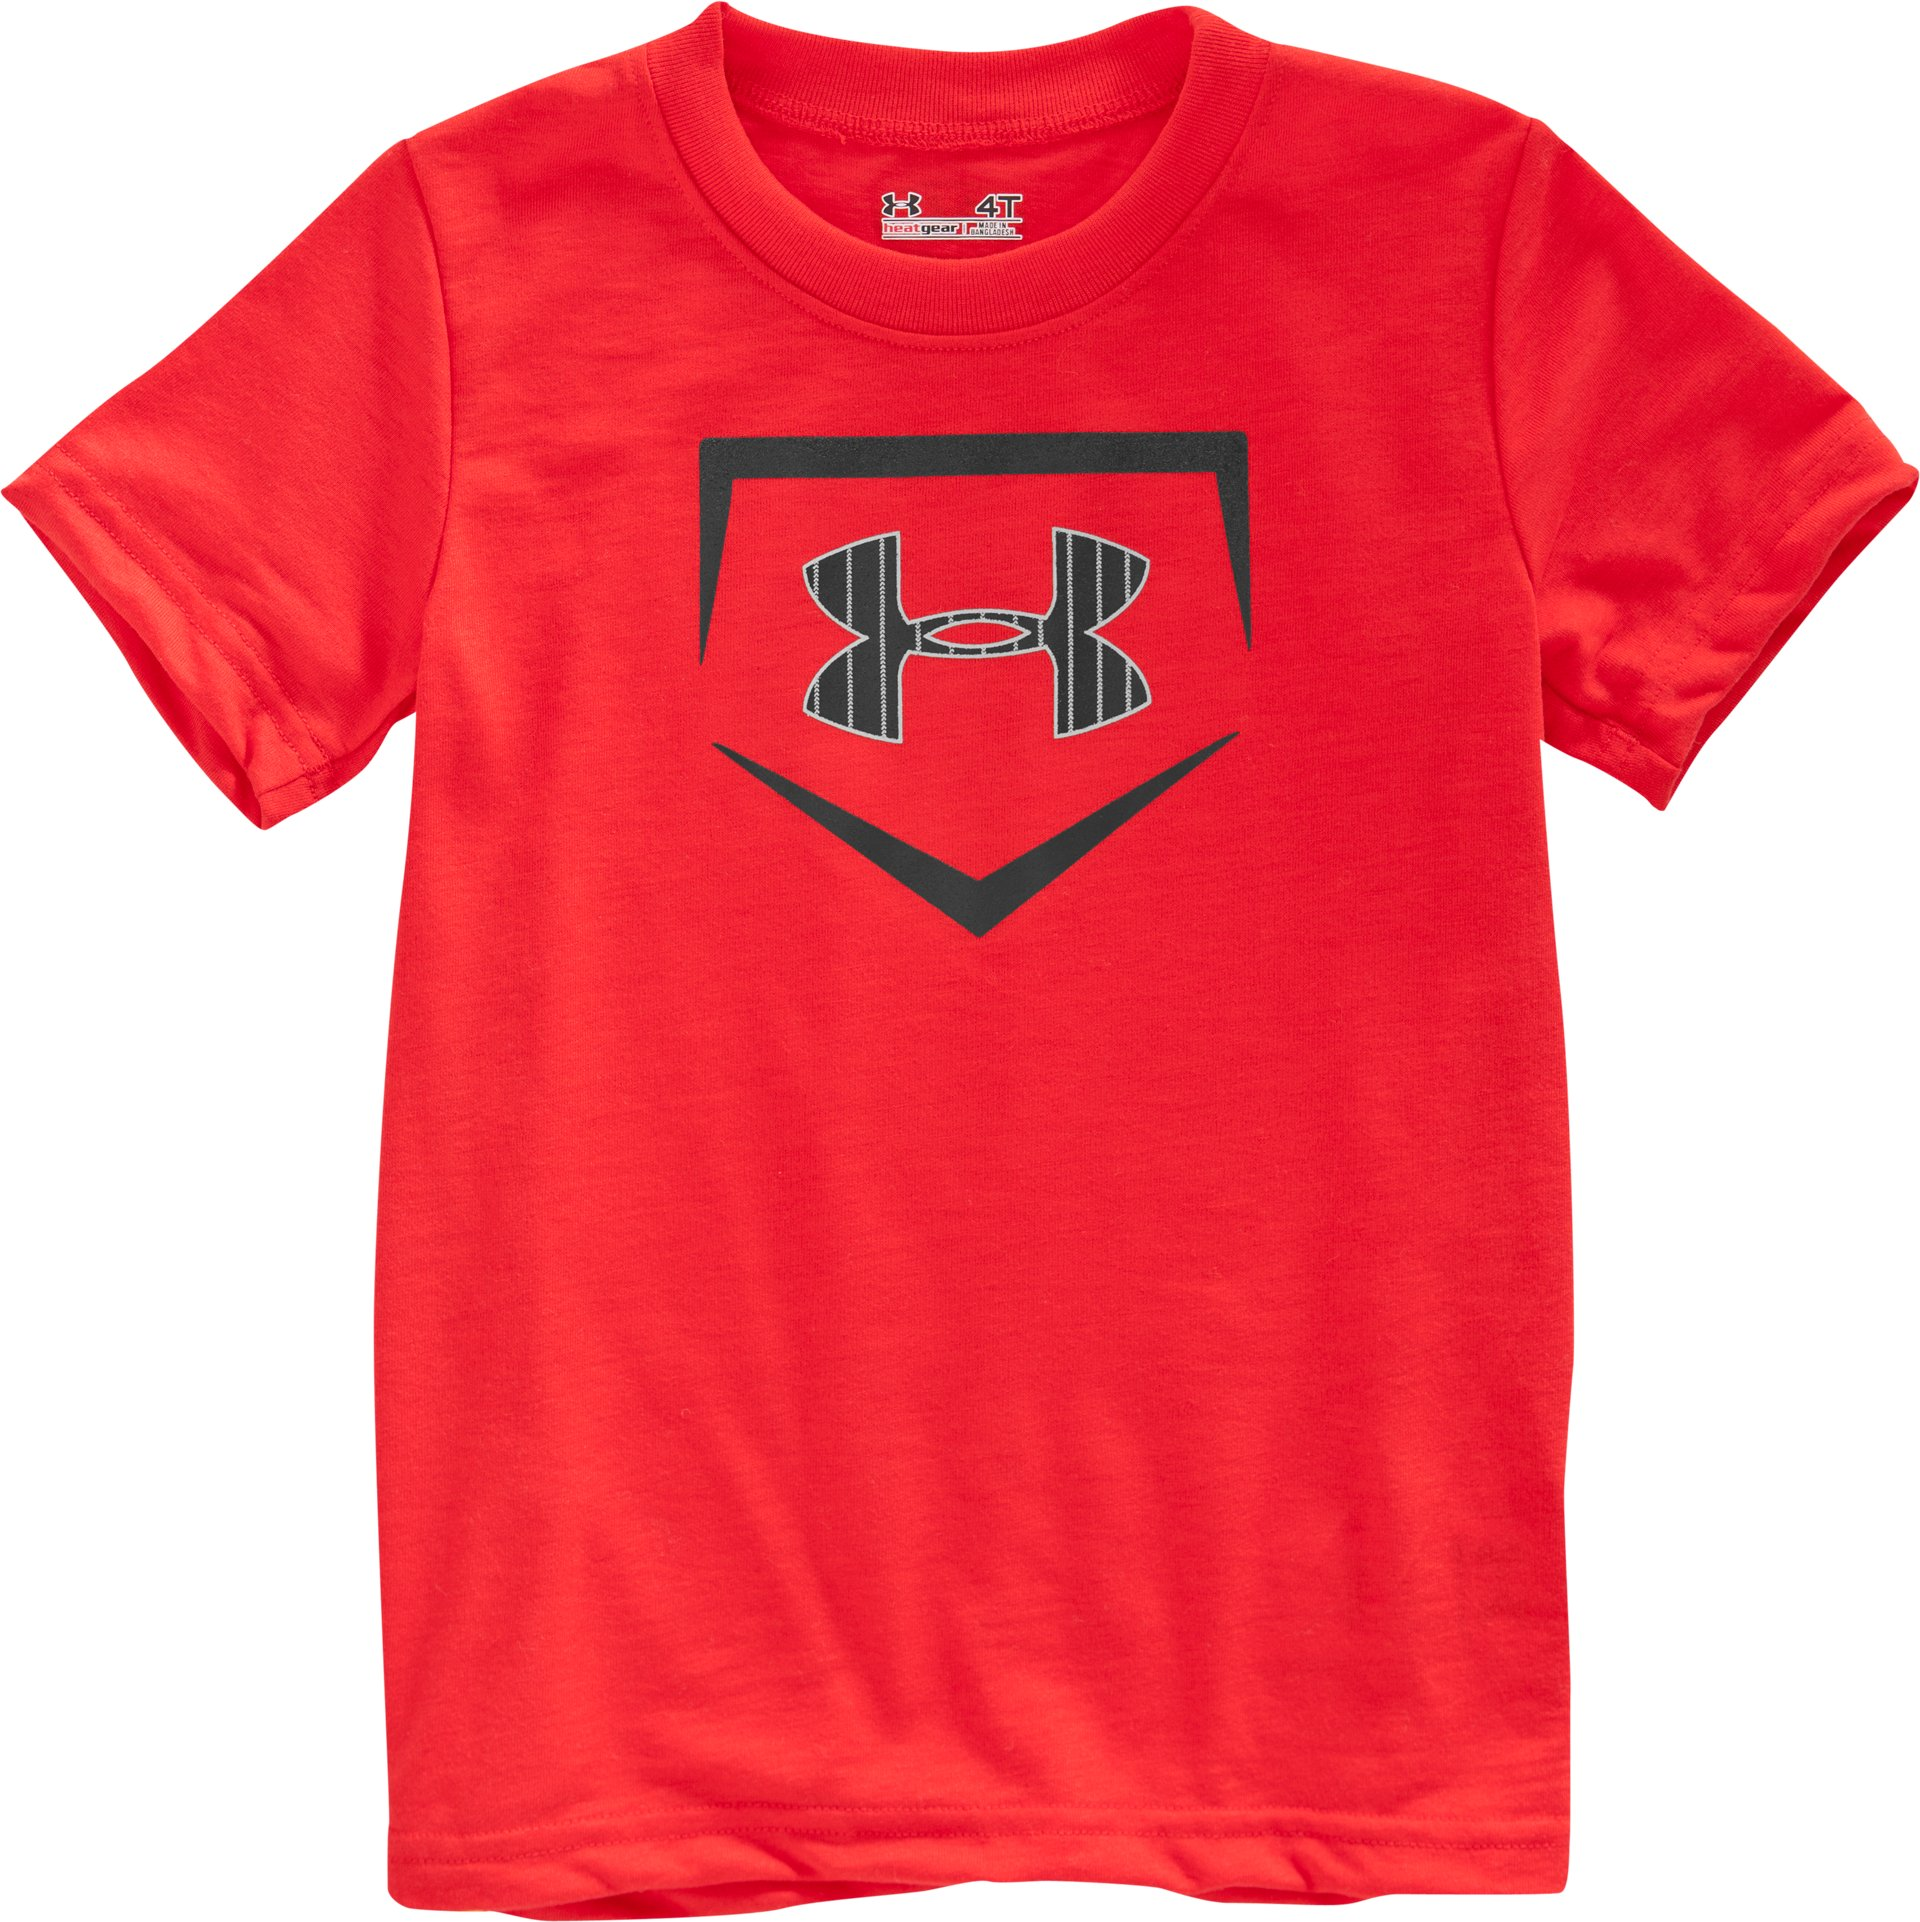 Boys' Toddler UA Home Plate T-Shirt, Red, Laydown